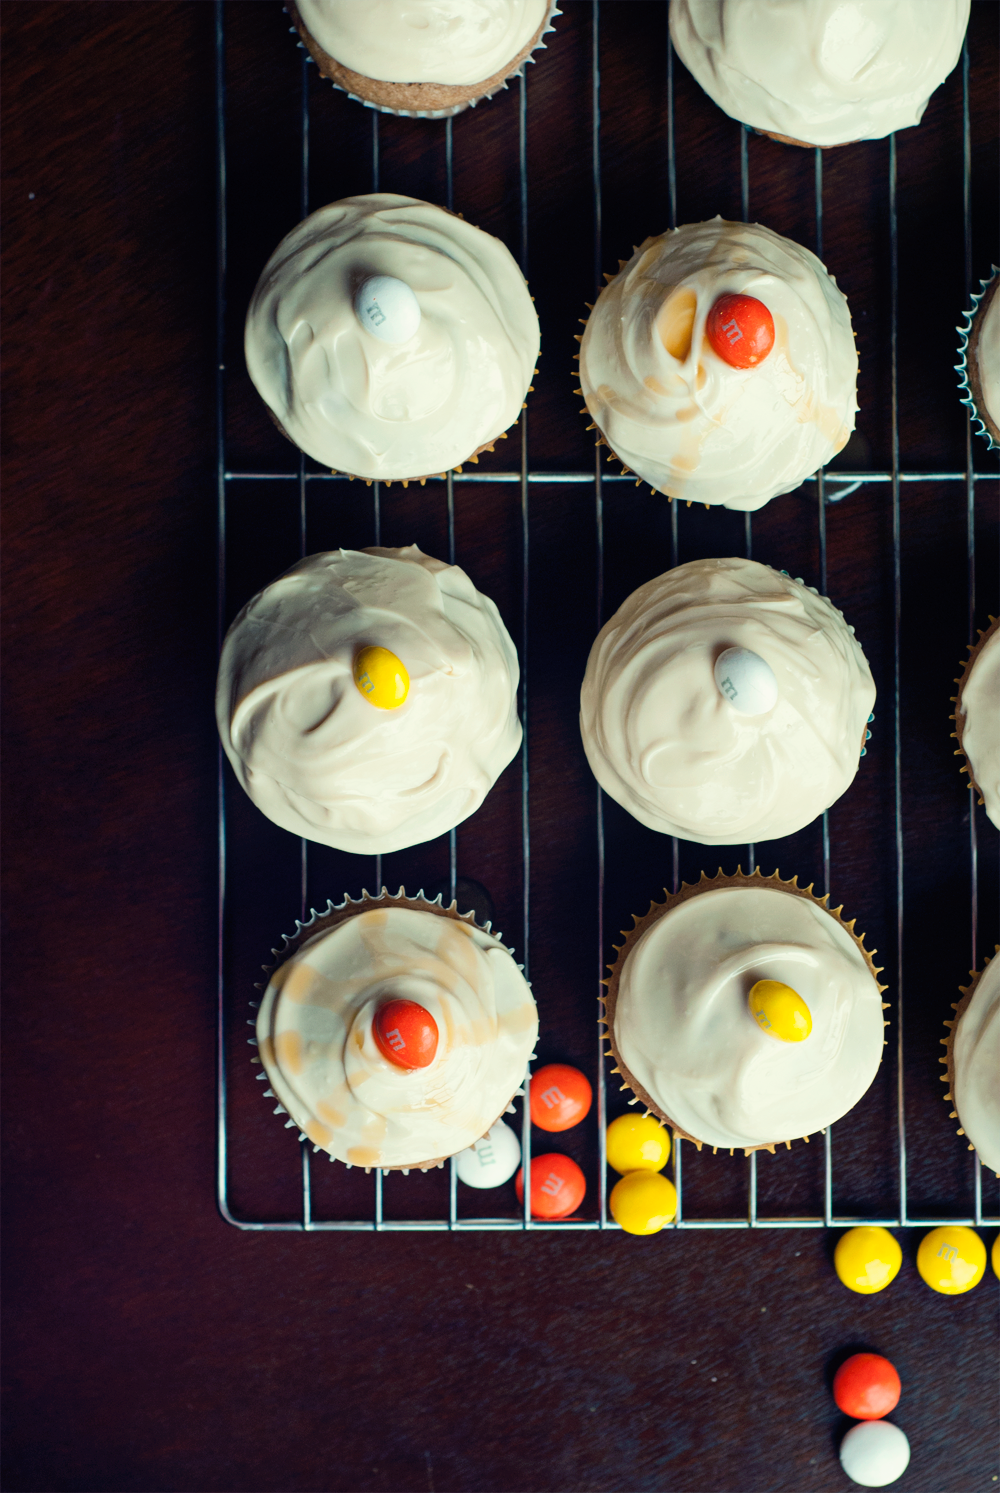 Spiced Apple Cupcakes with Caramel Cream Cheese Frosting by A Simple Pantry